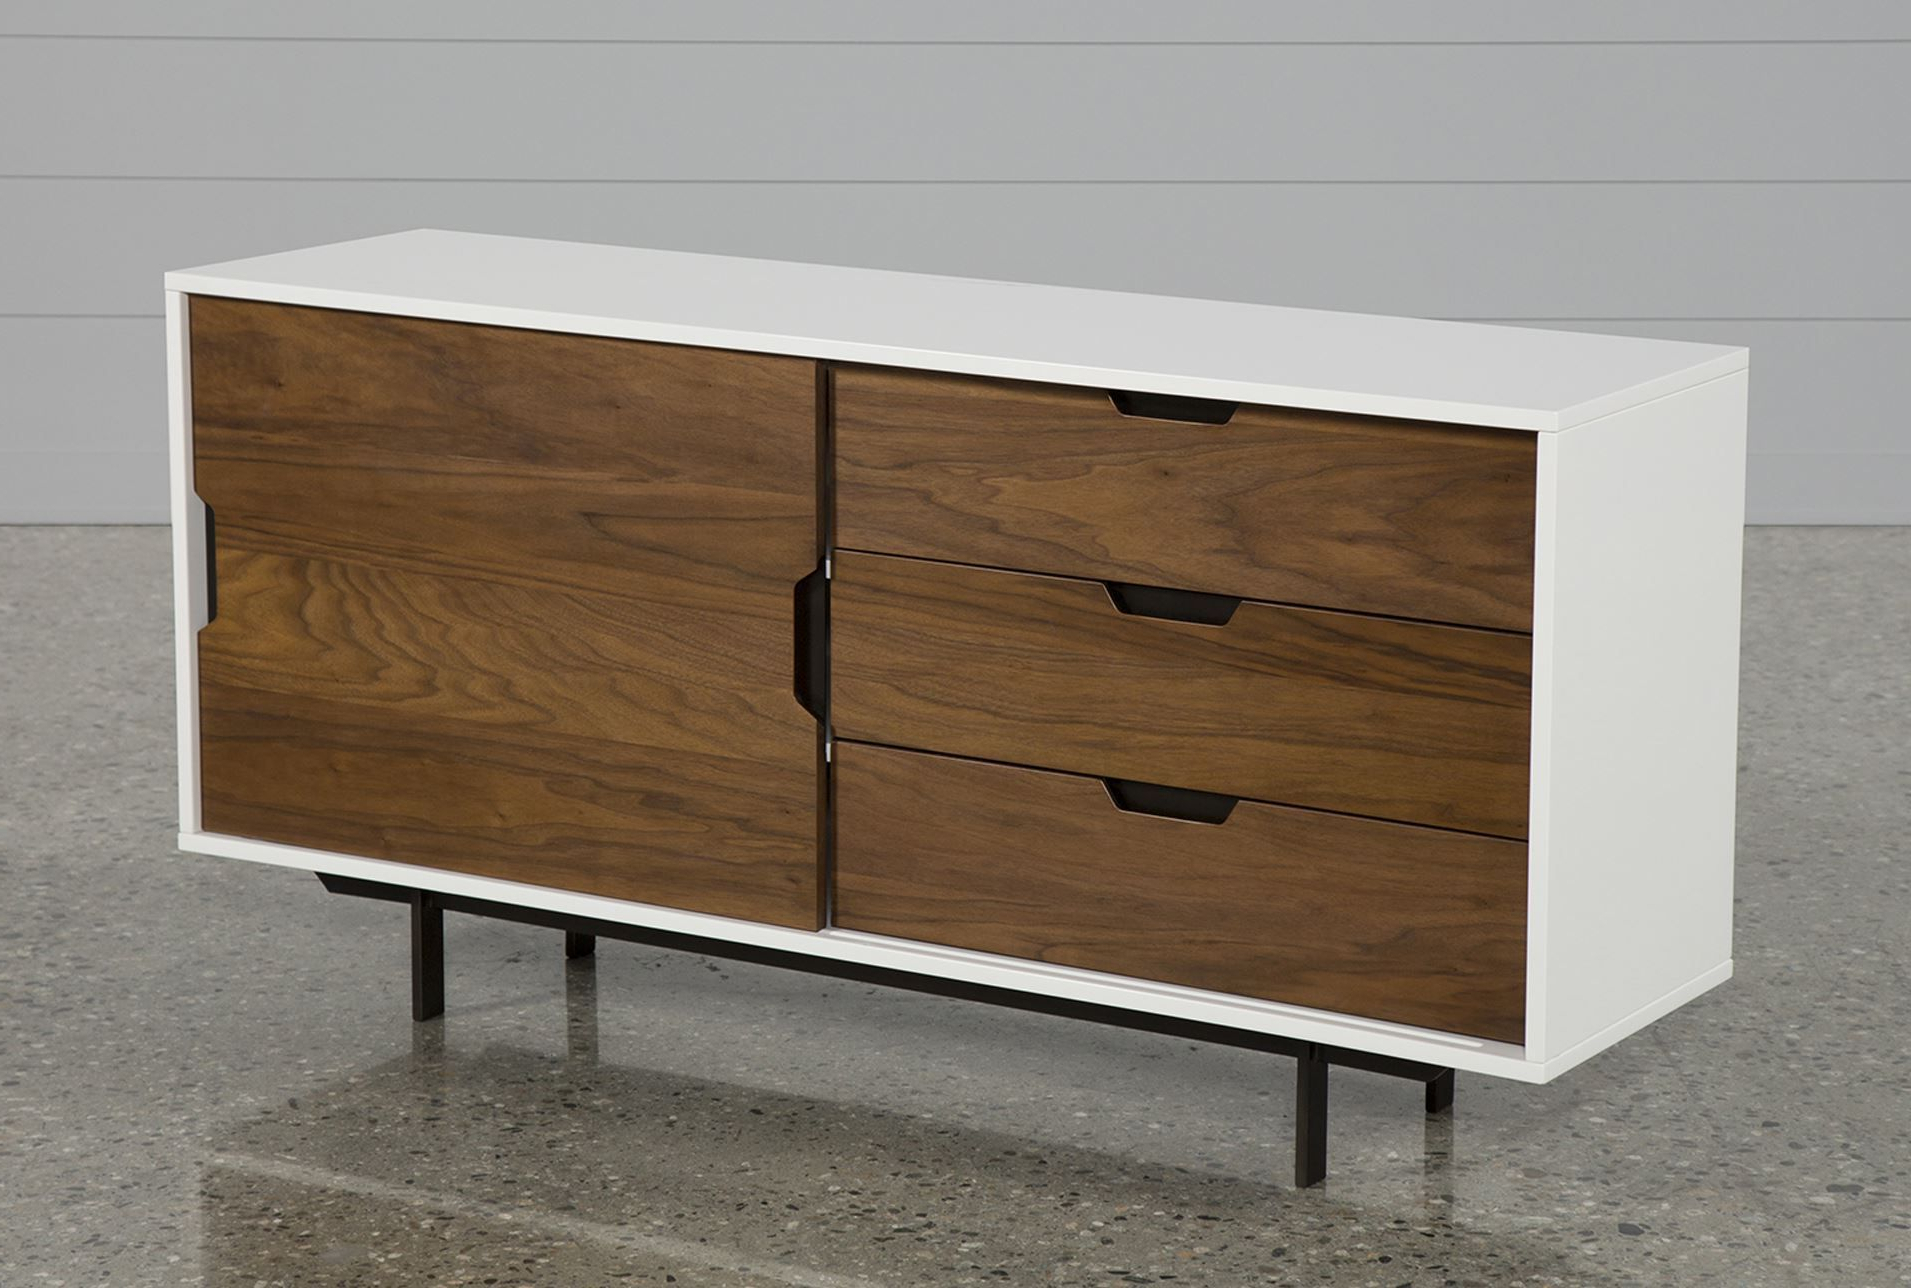 Bale 60 Inch Tv Stand | 60 Inch Tvs, Consoles And Living Rooms With Bale Rustic Grey 82 Inch Tv Stands (View 2 of 20)